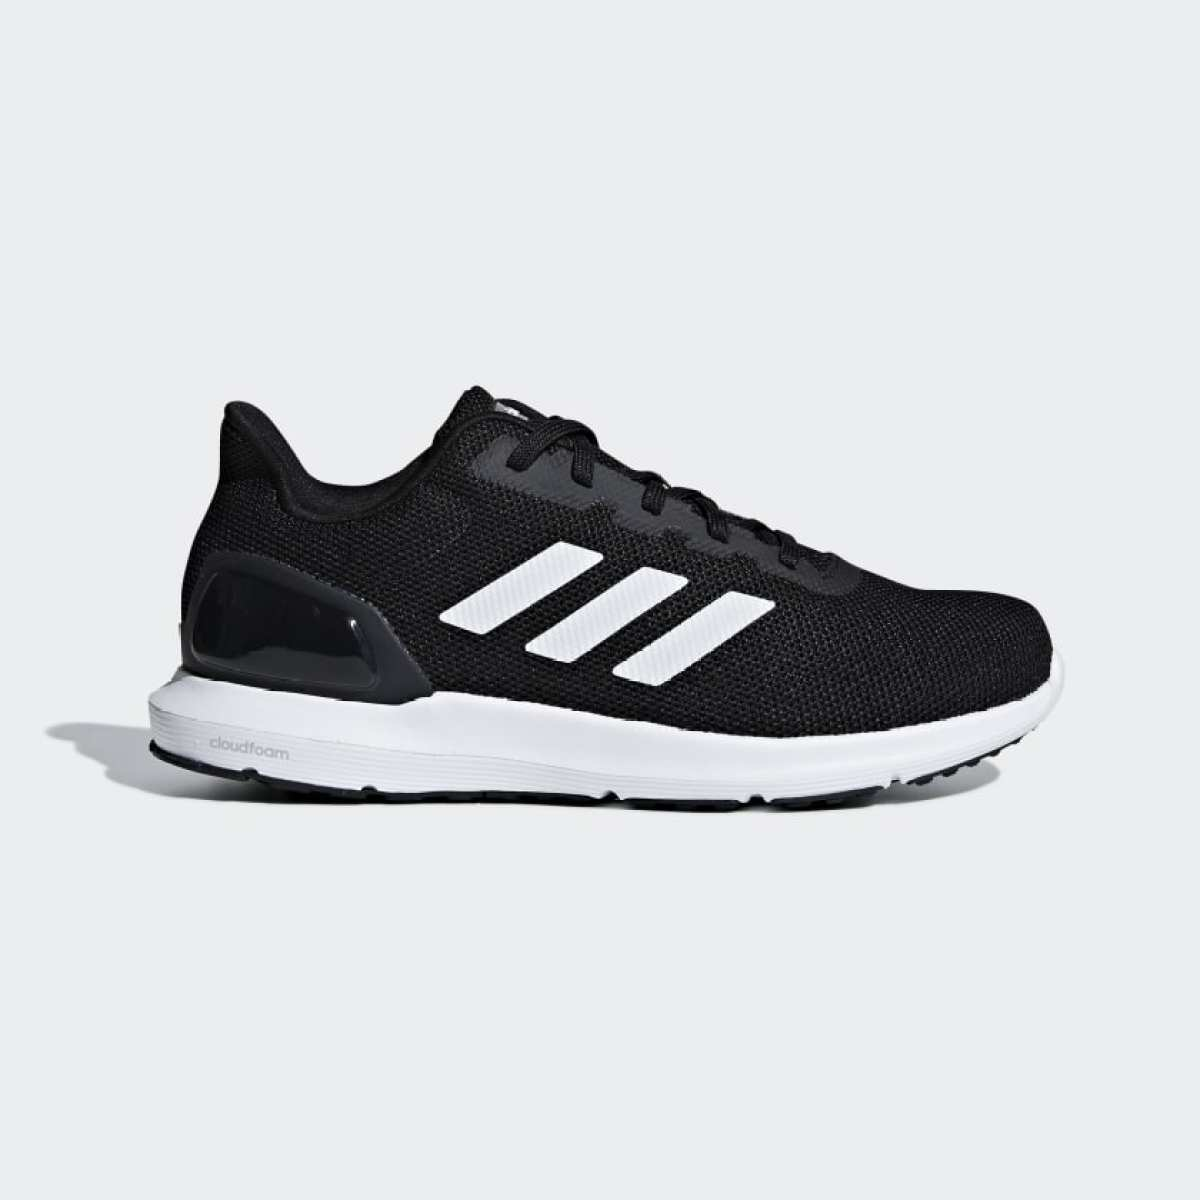 Adidas Black Cosmic 2 Running Shoes For Men F34877